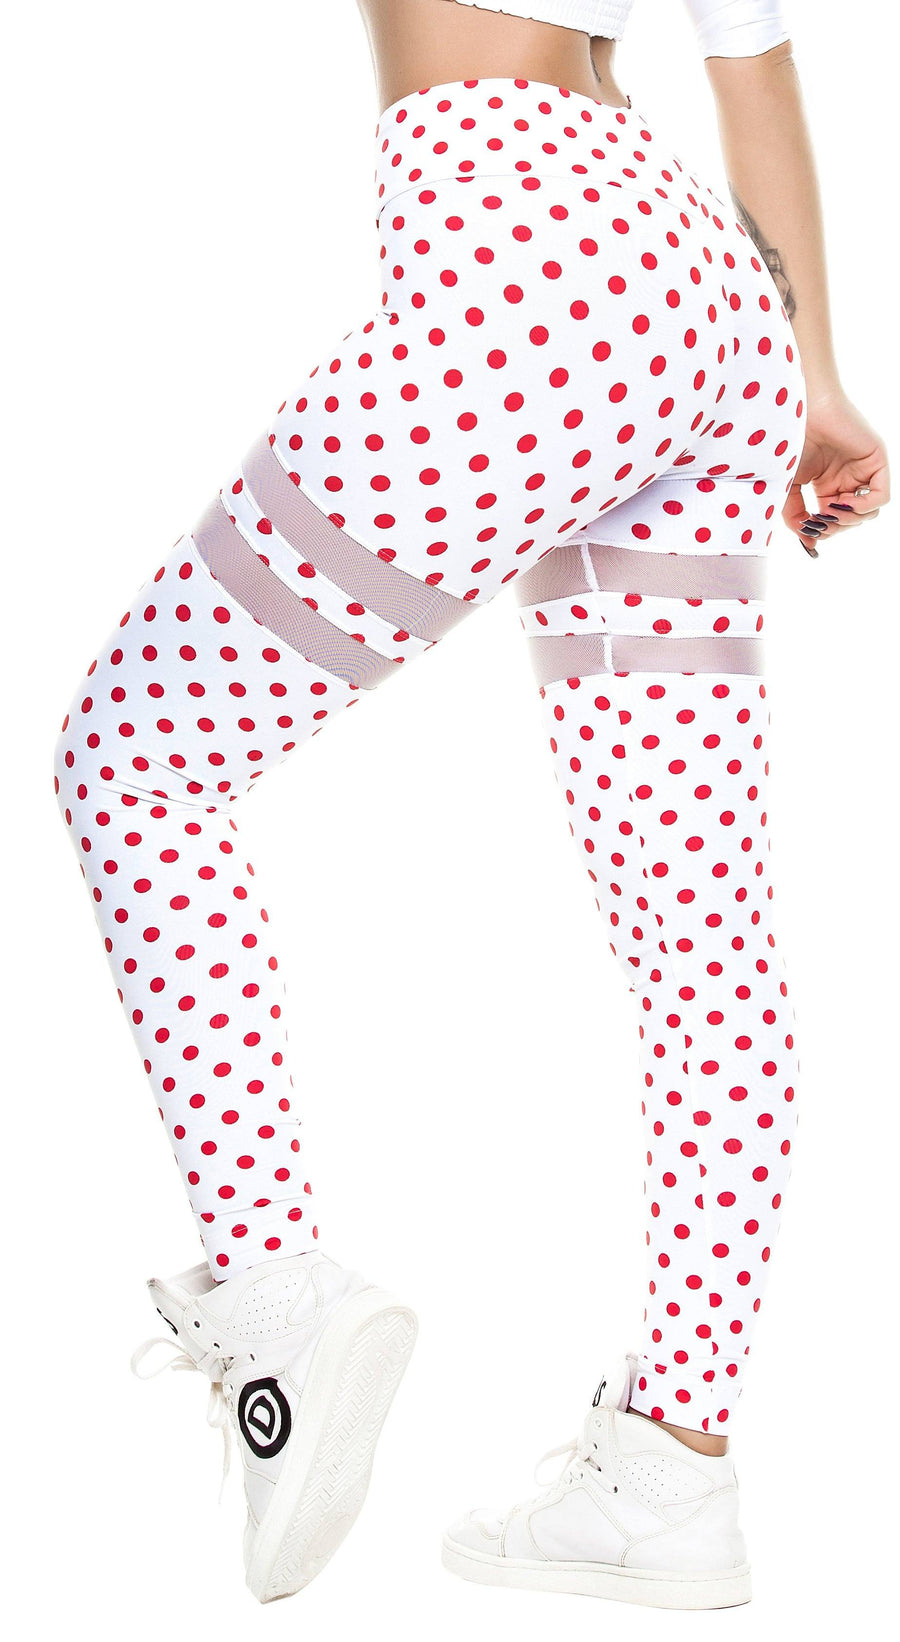 Workout Legging -  V Cut Polka Dots Red & White